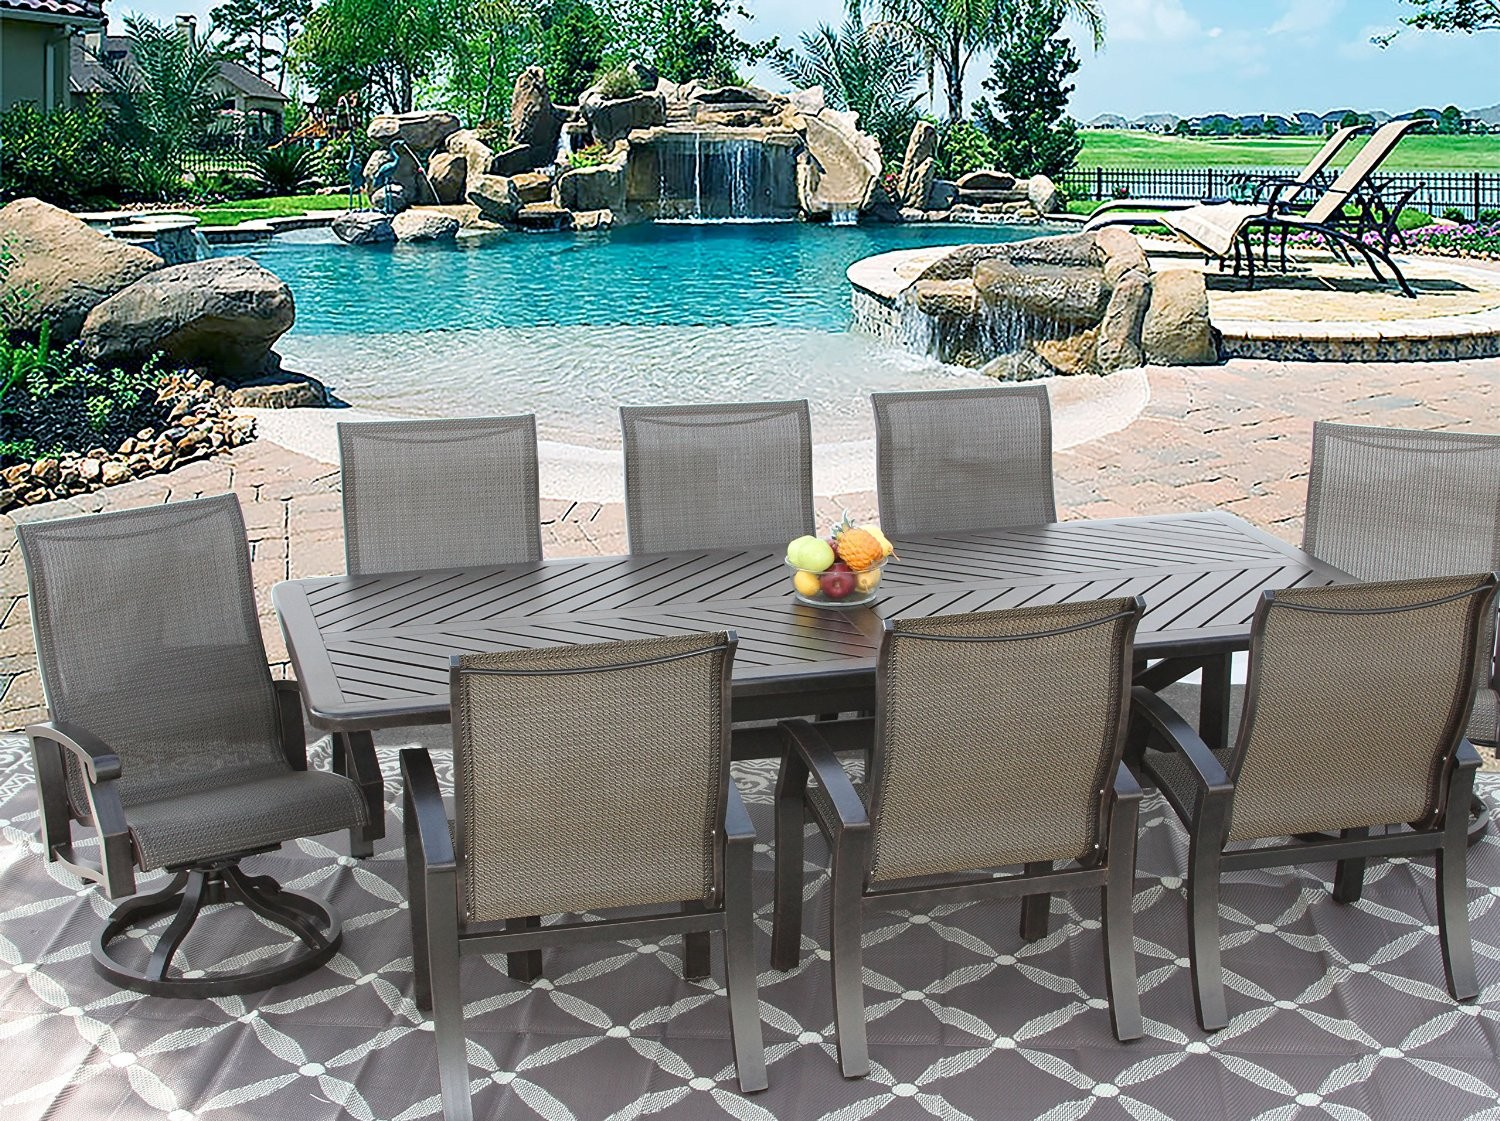 Merveilleux Outdoor Dining Sets For 8 Photo   10